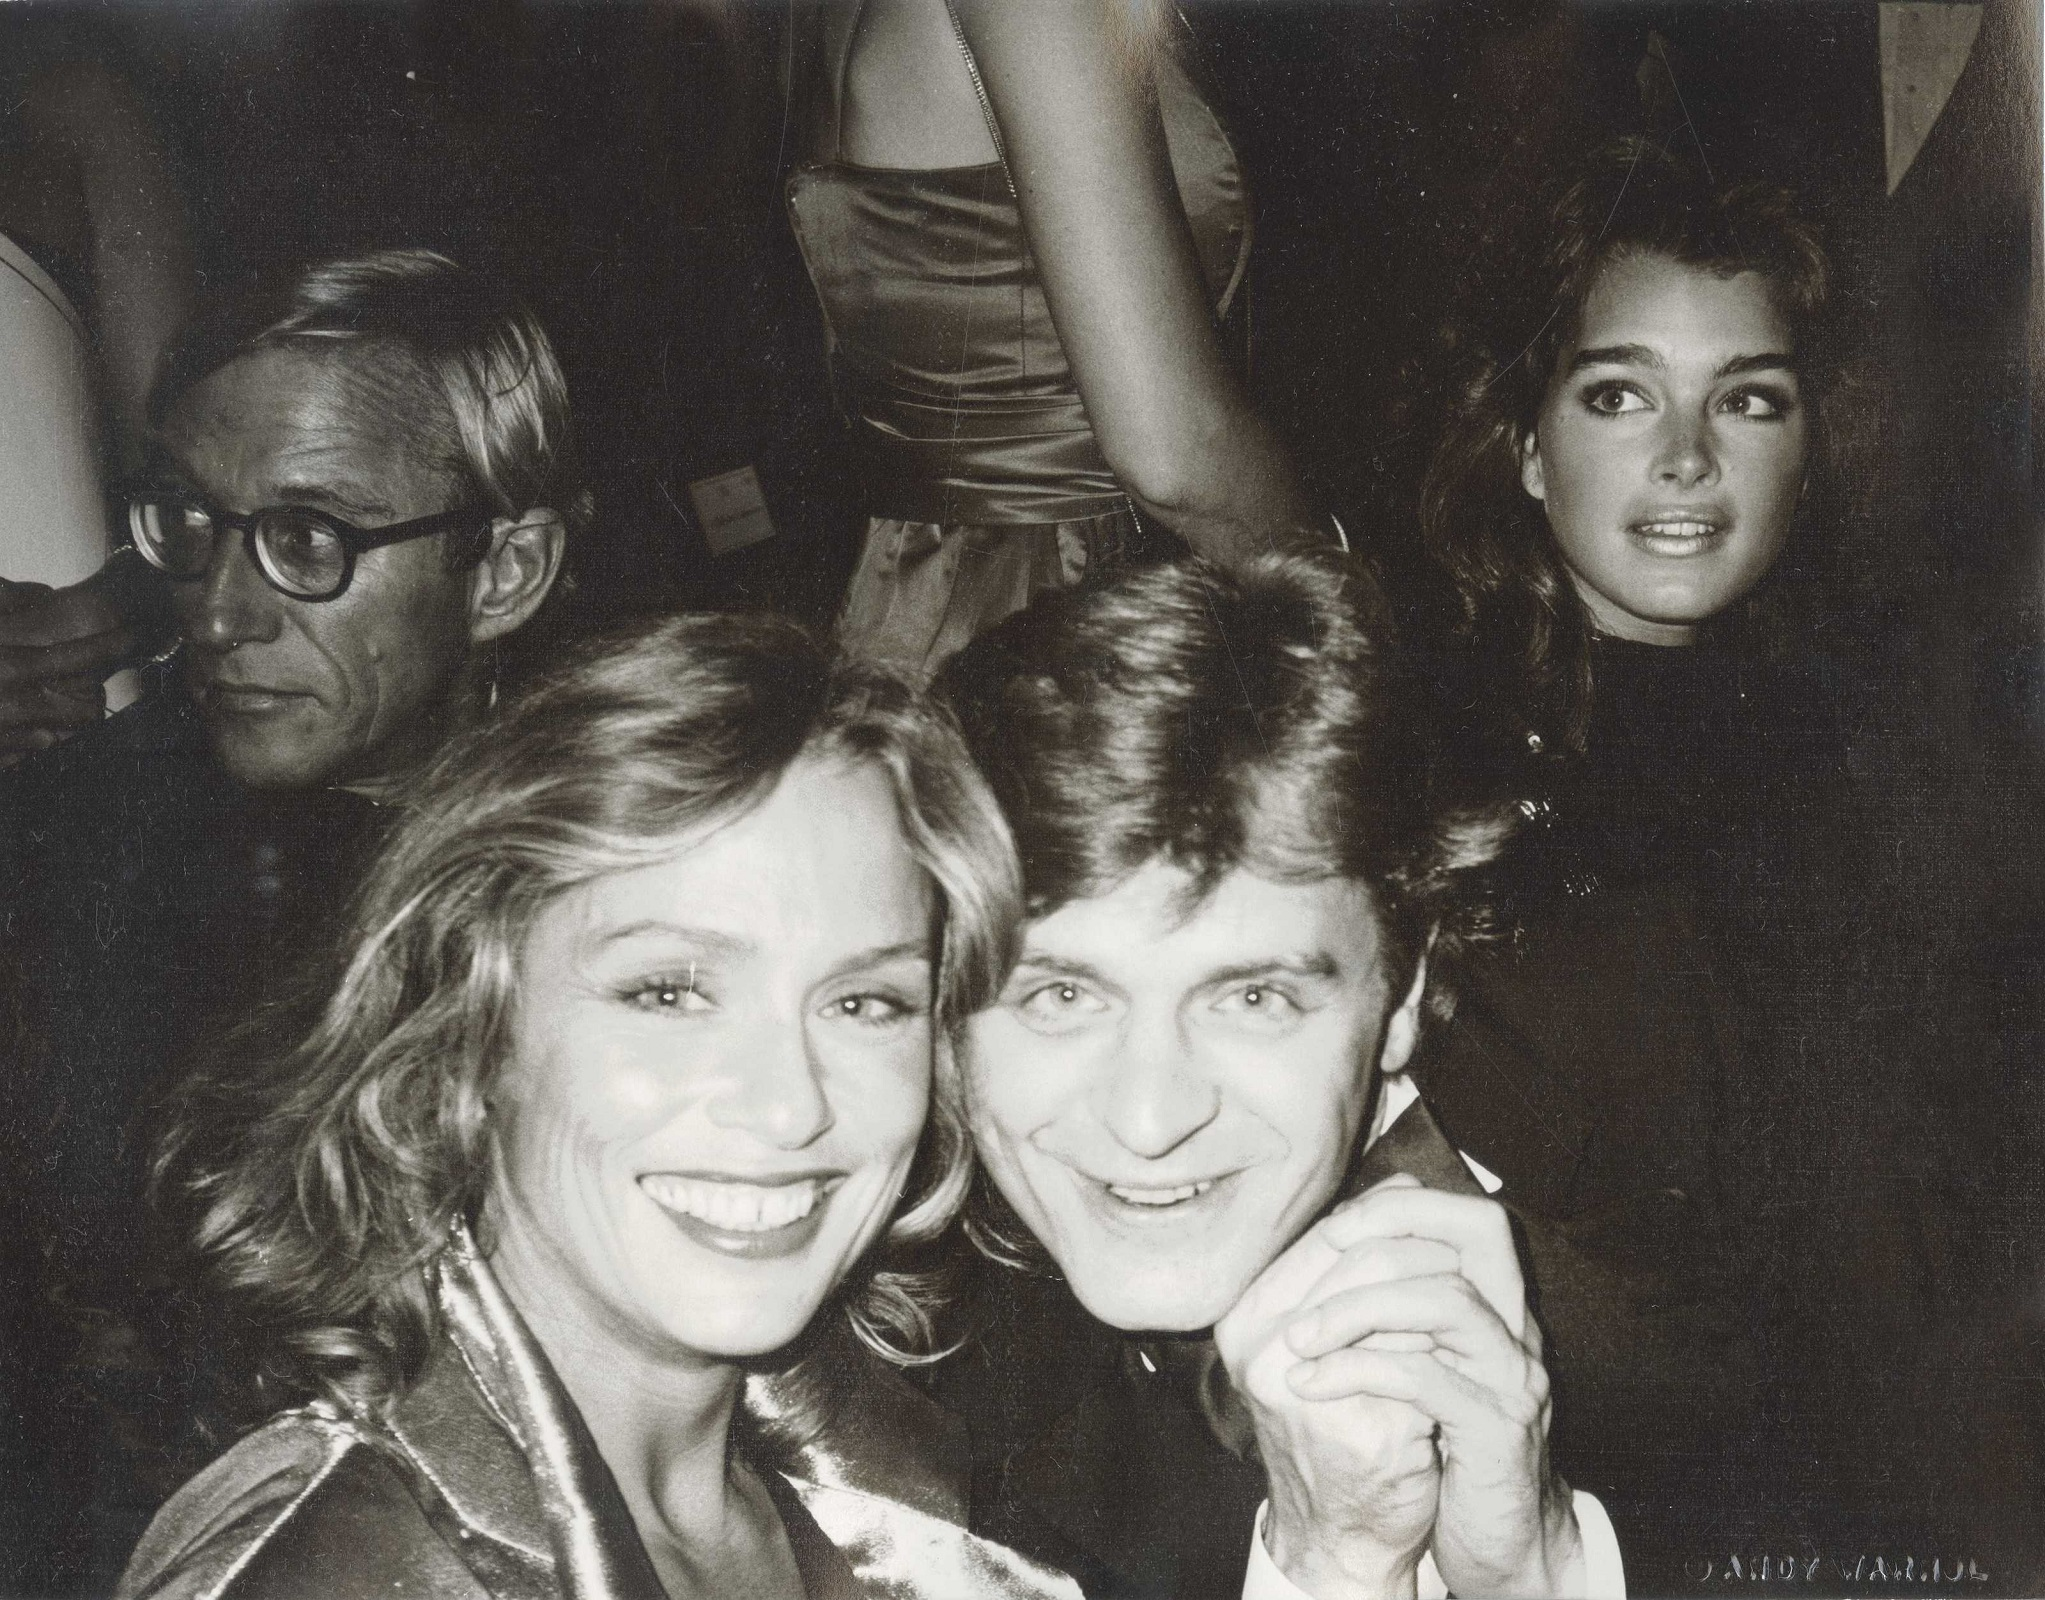 Studio 54 was a Hub for Revelry and Excess